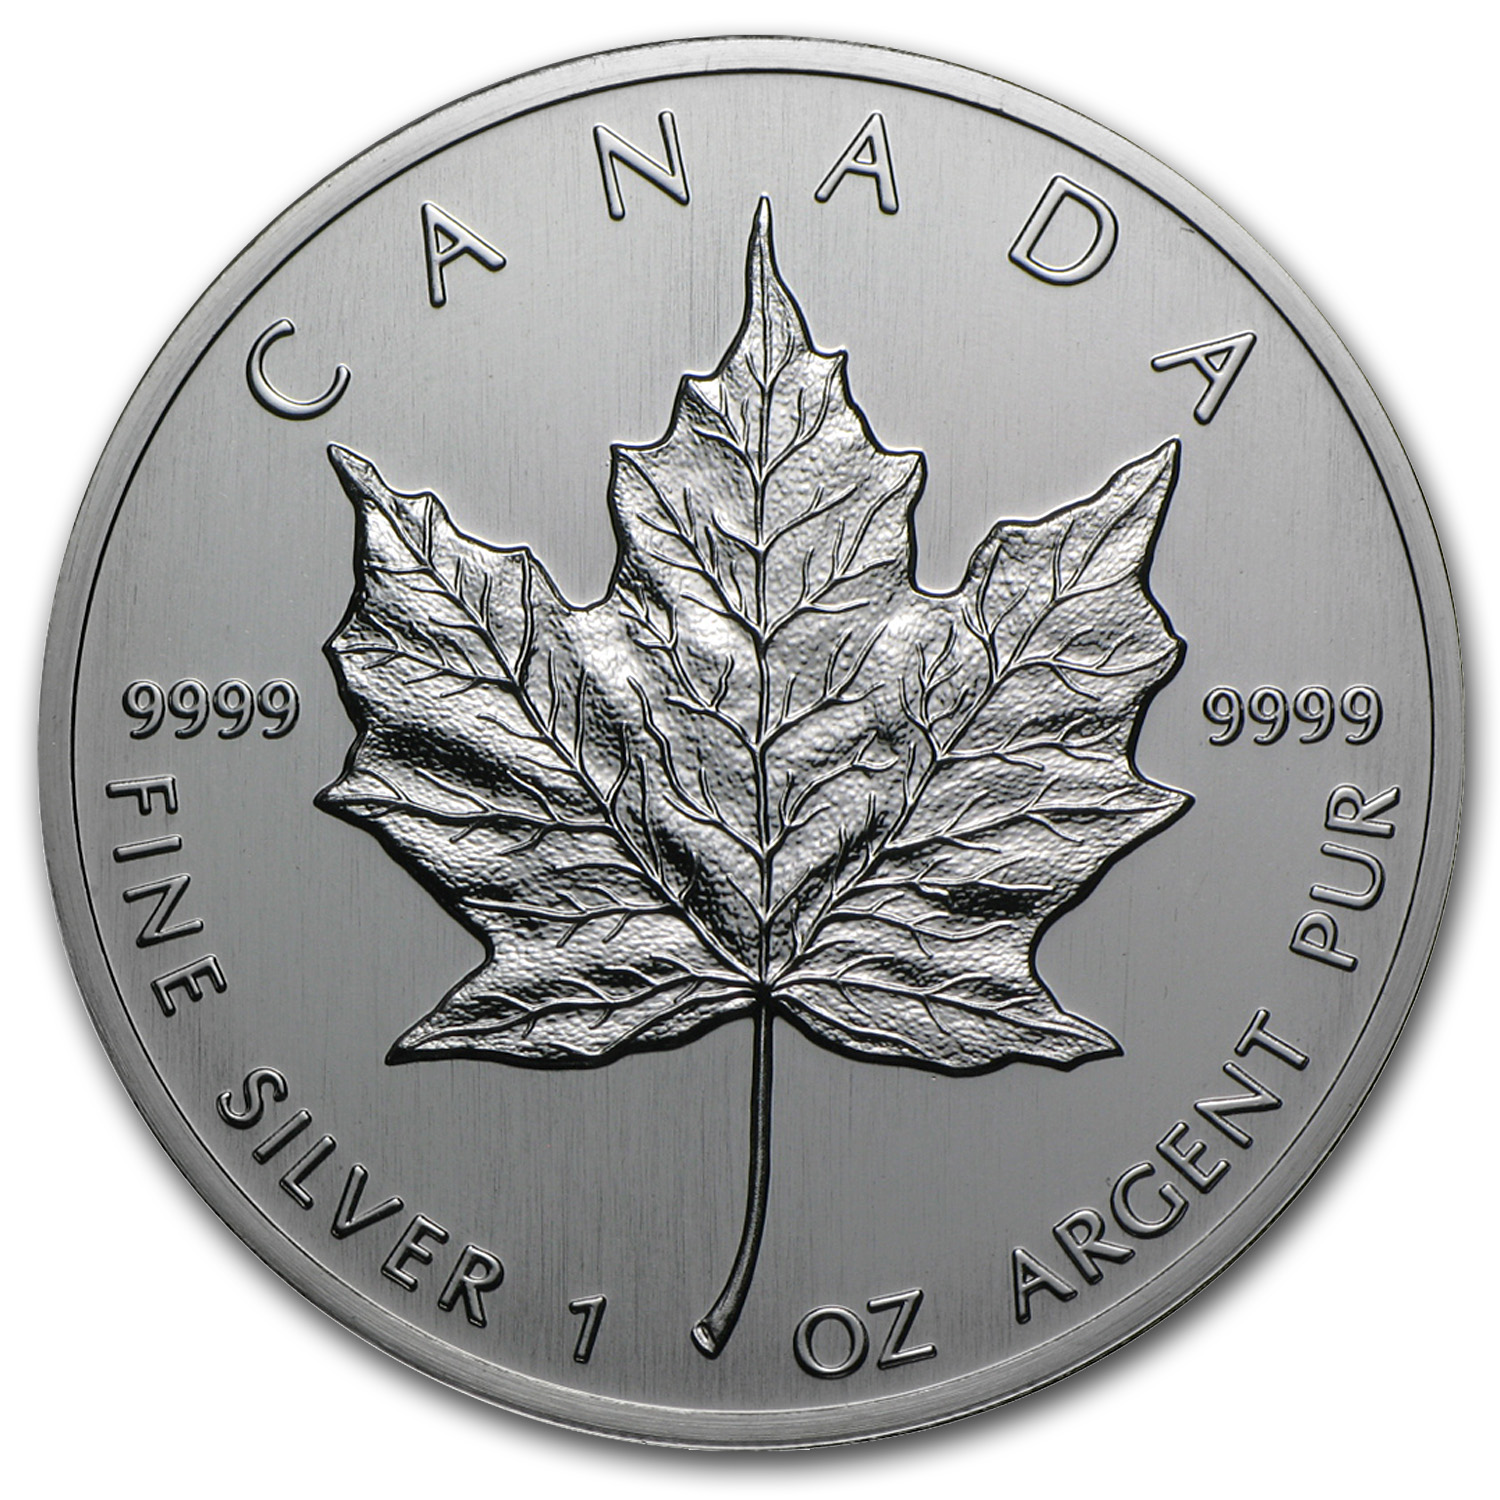 1988 1 oz Silver Canadian Maple Leaf BU